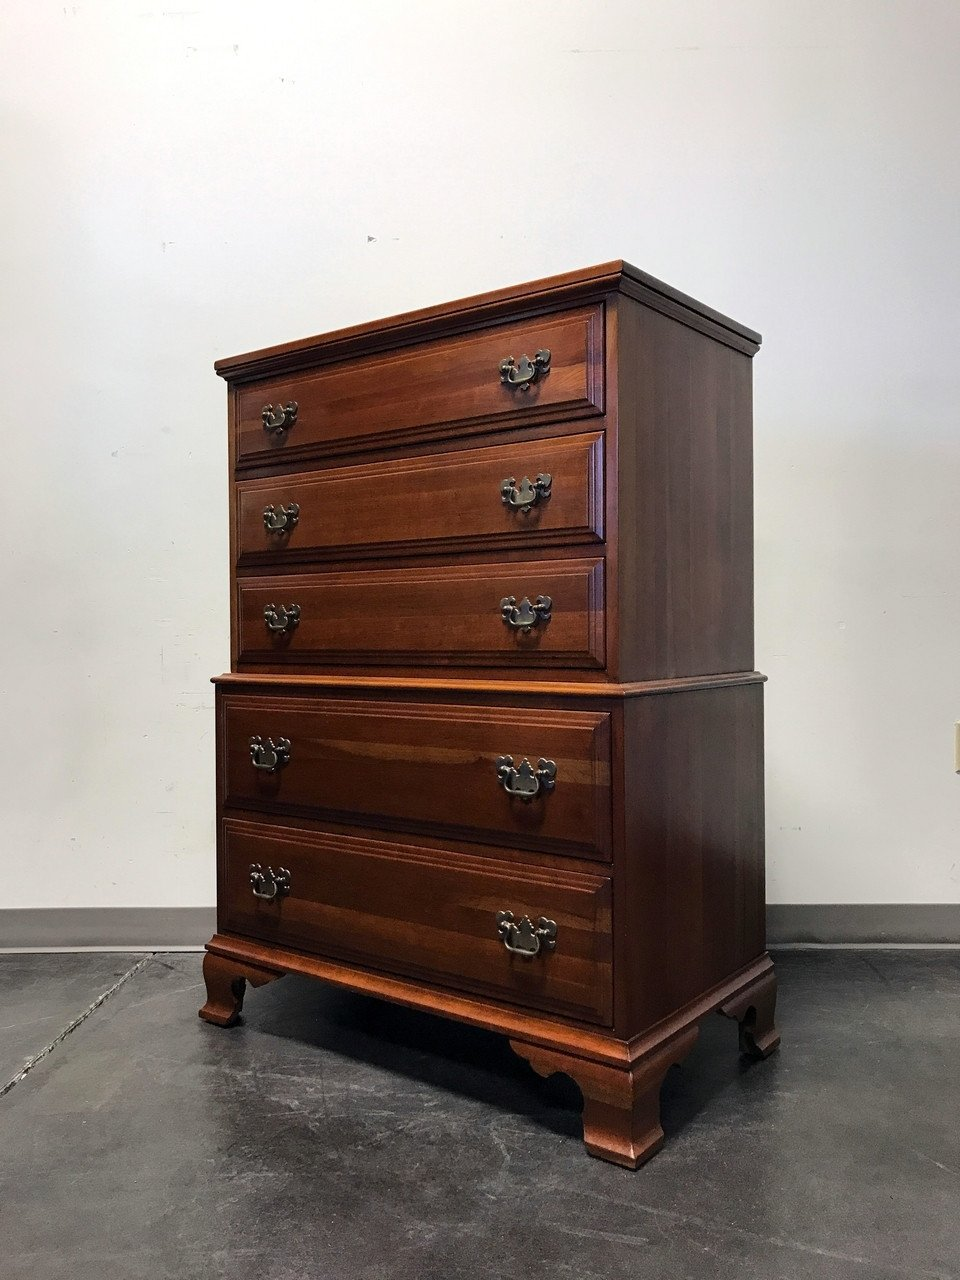 Solid Cherry Wood Bedroom Furniture Inspirational sold Out Davis Cabinet Pany solid Cherry Chippendale Chest On Chest